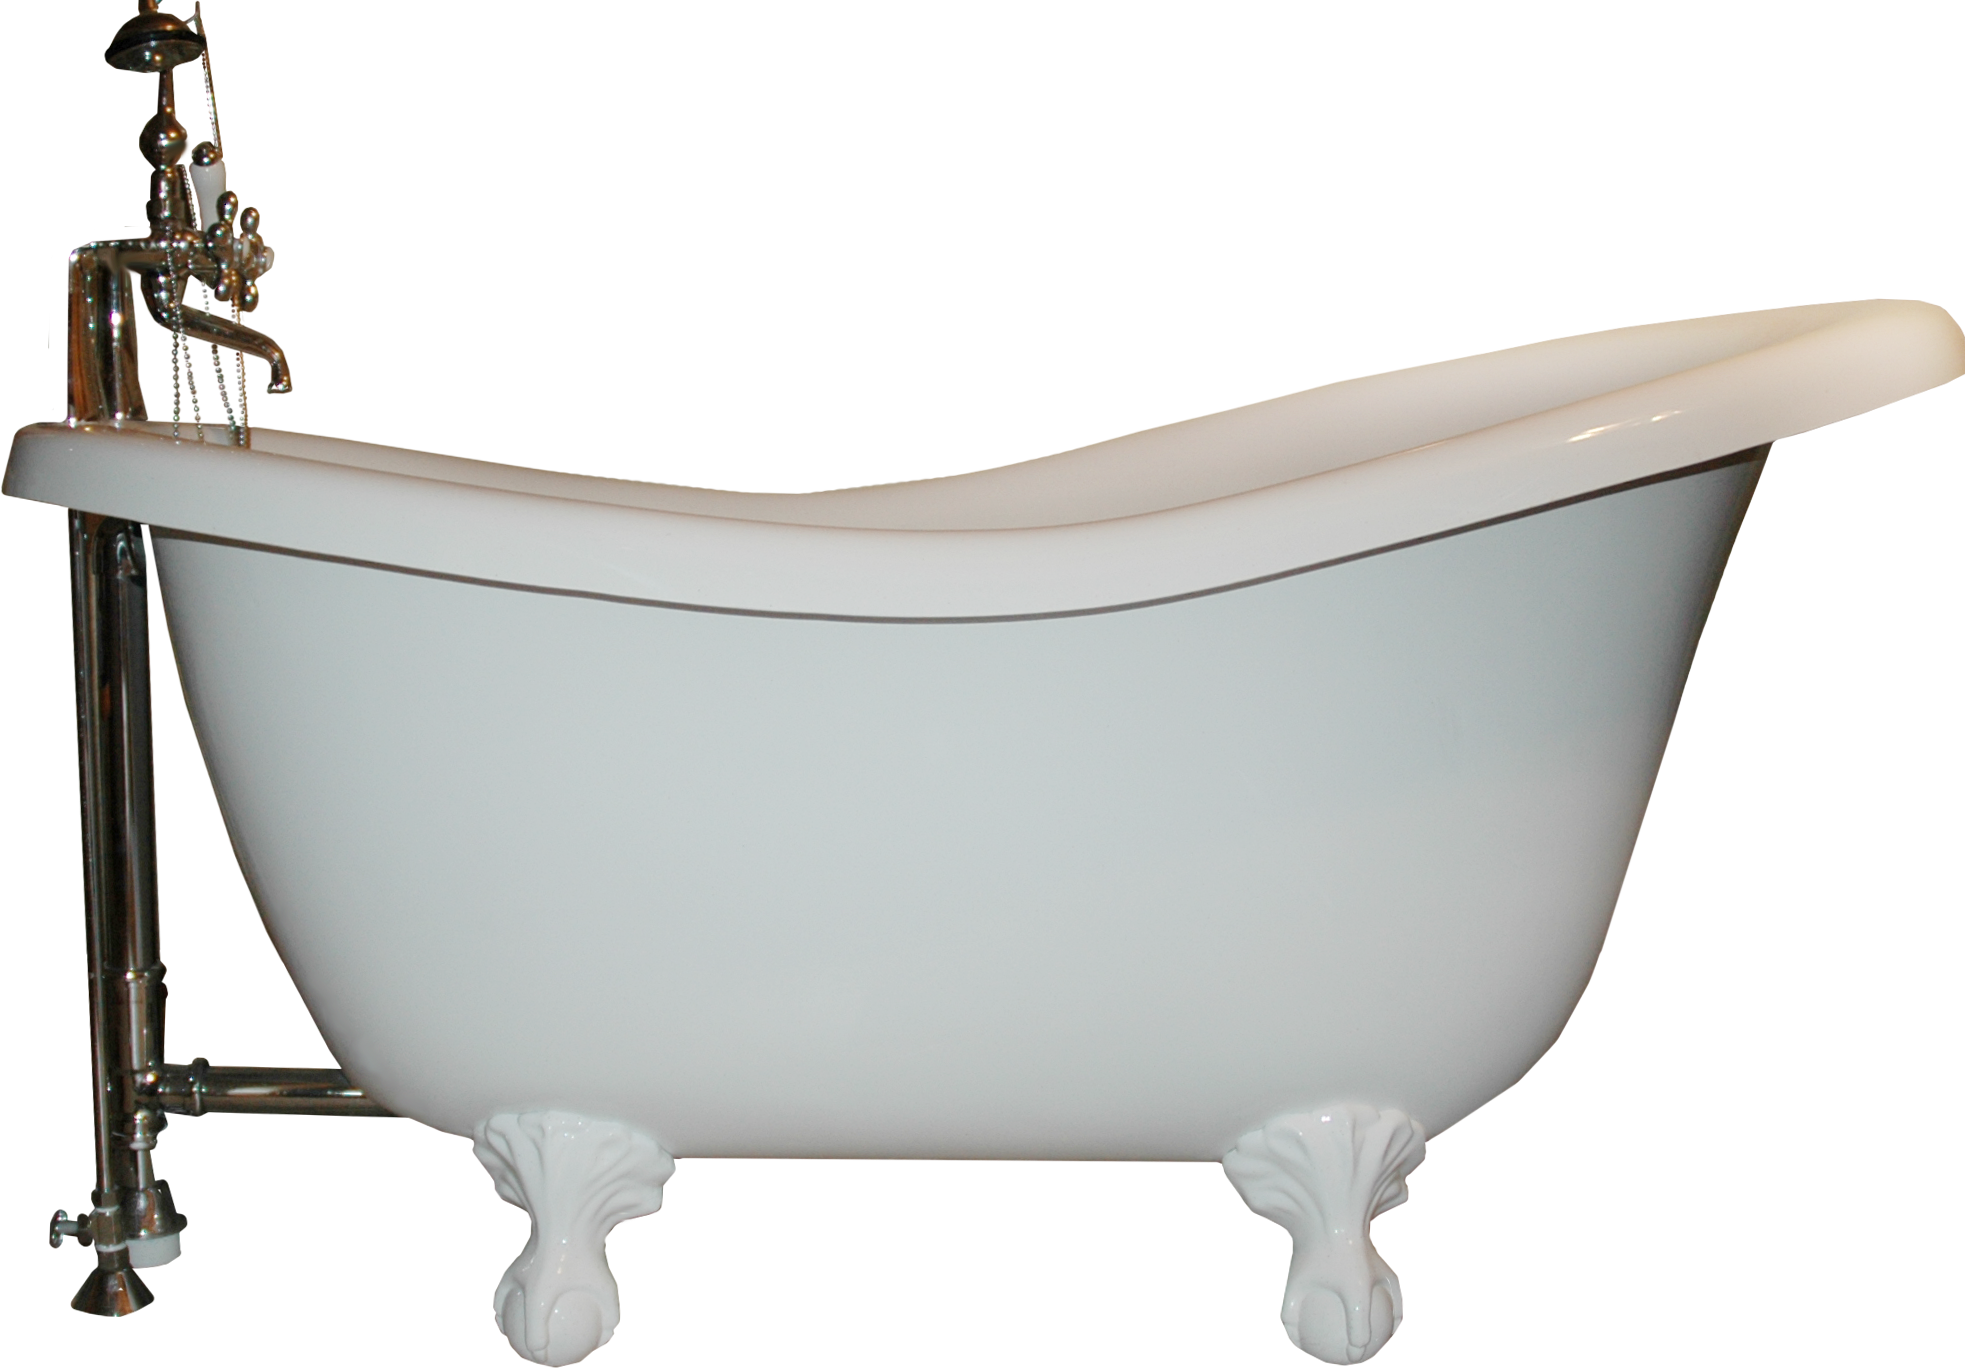 Bathtub PNG Transparent Images - FreeIconsPNG